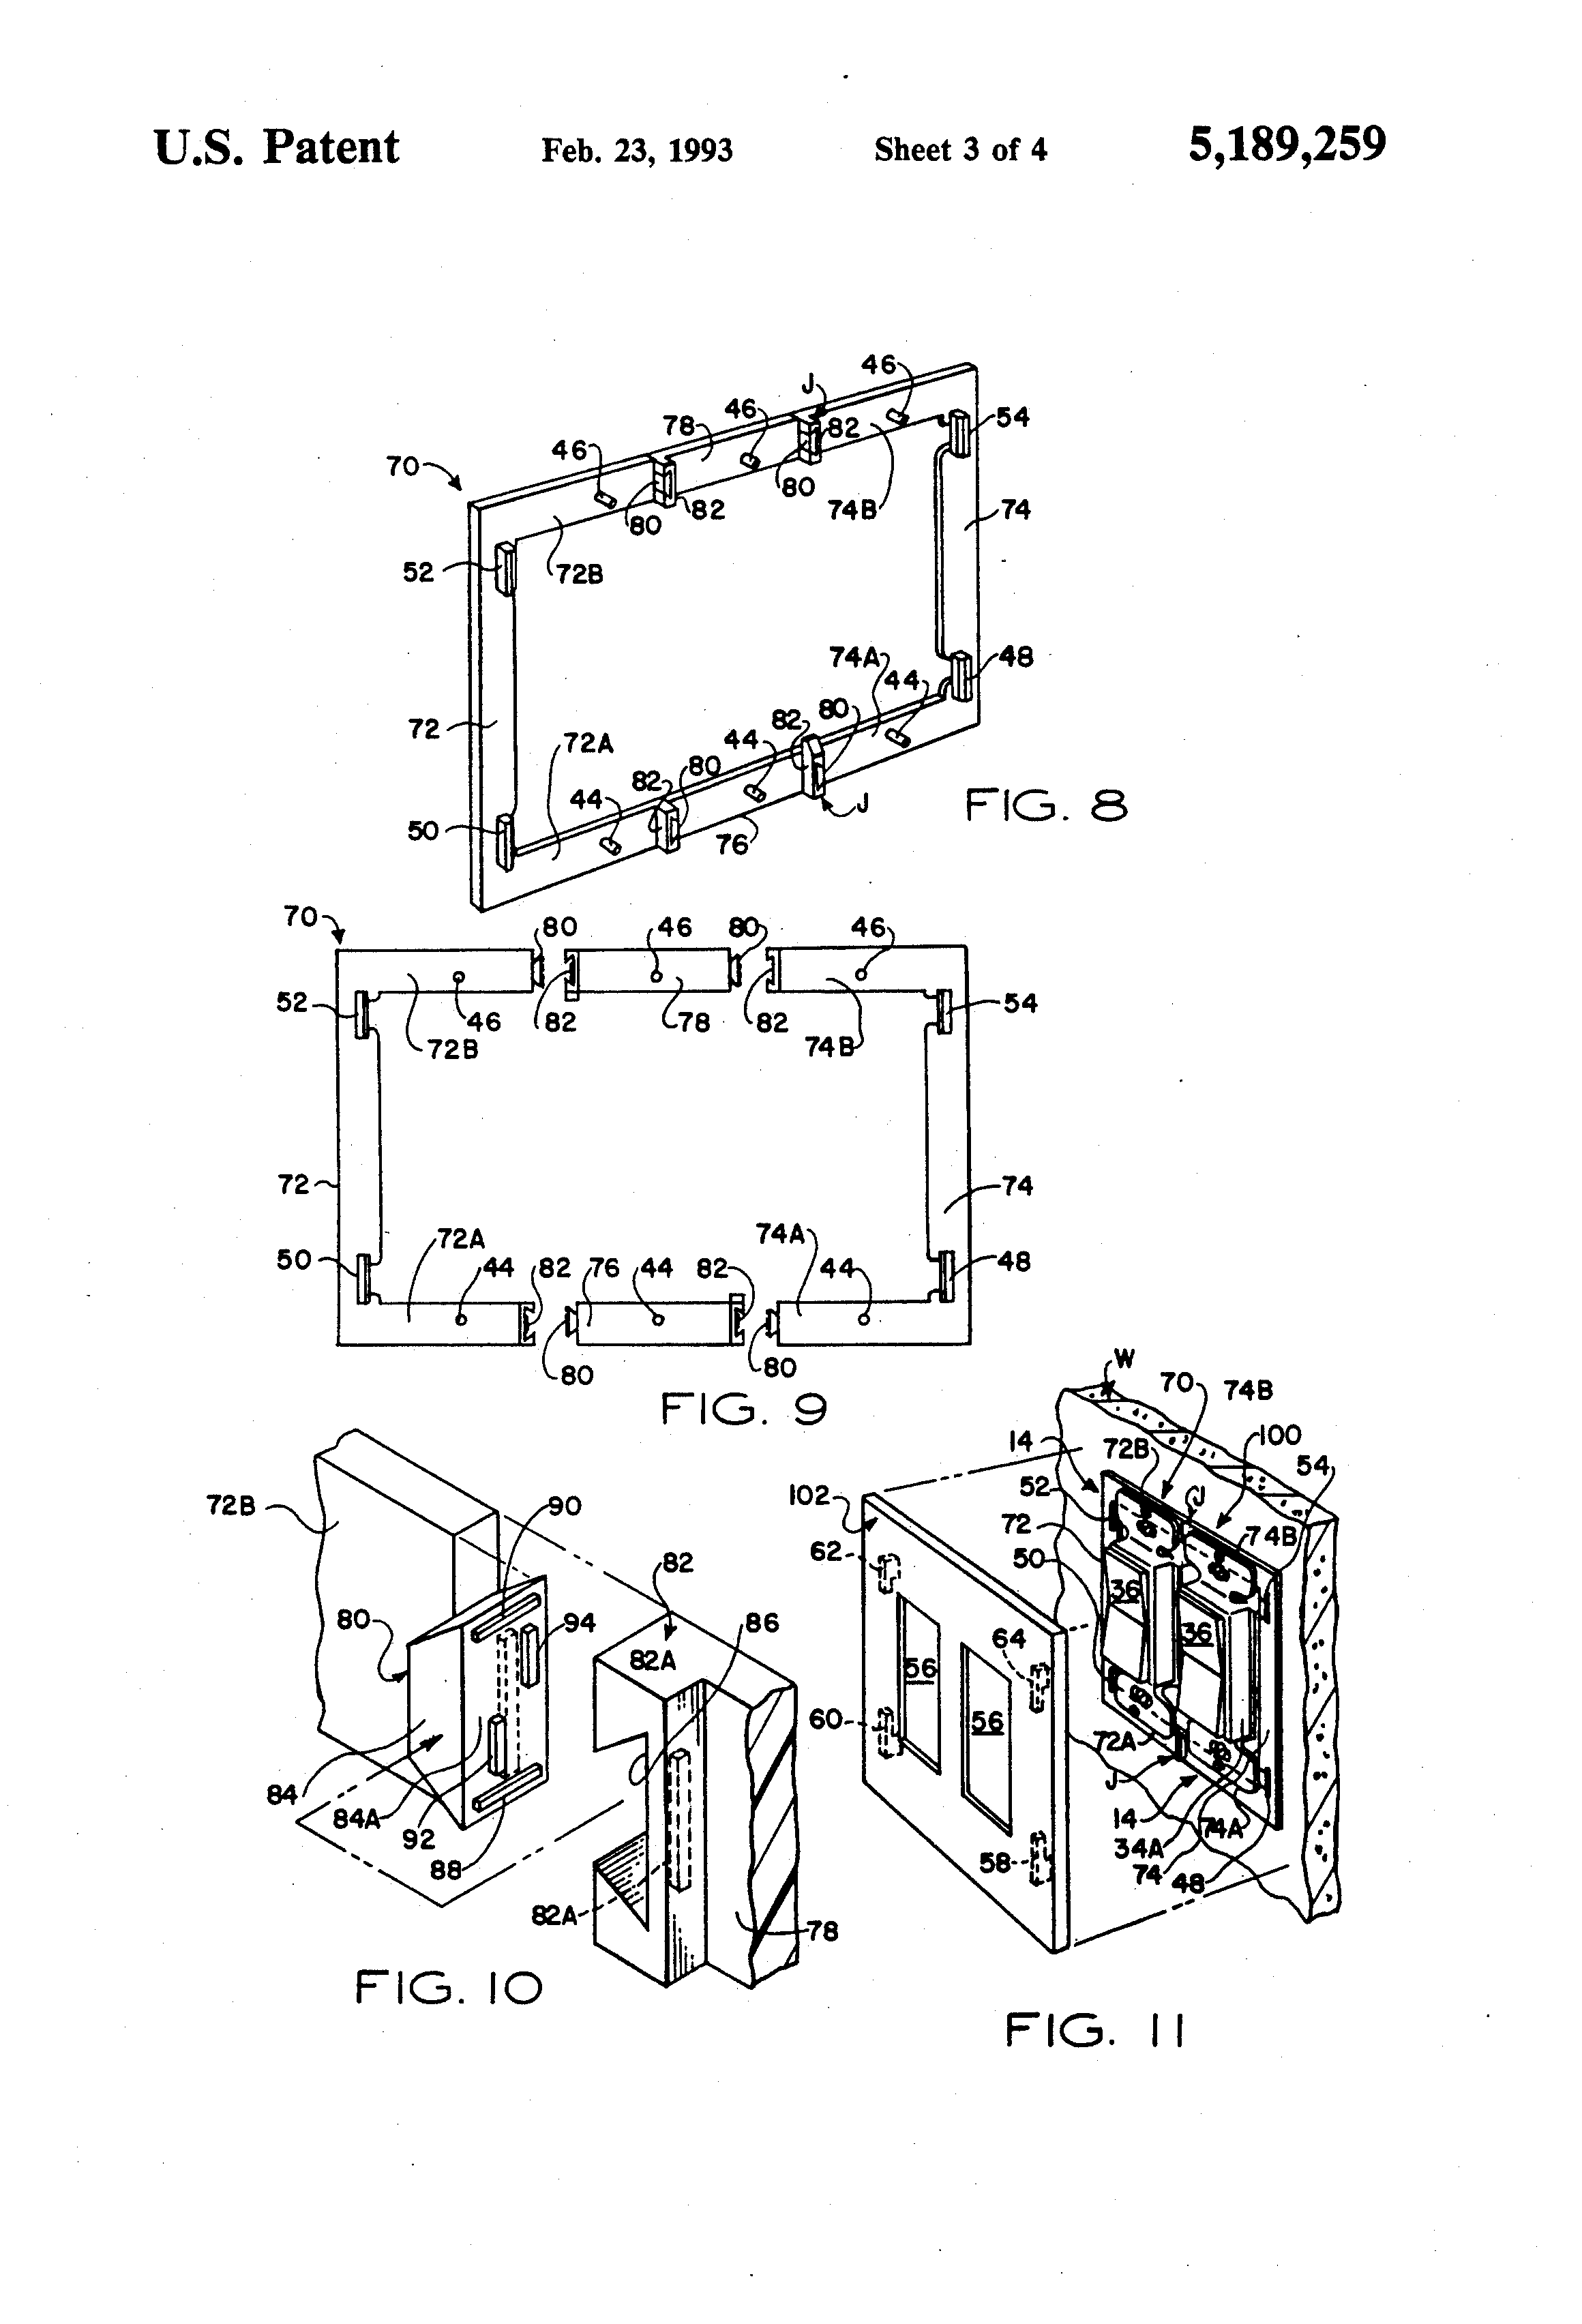 Wiring A Double Outlet Box Diagram